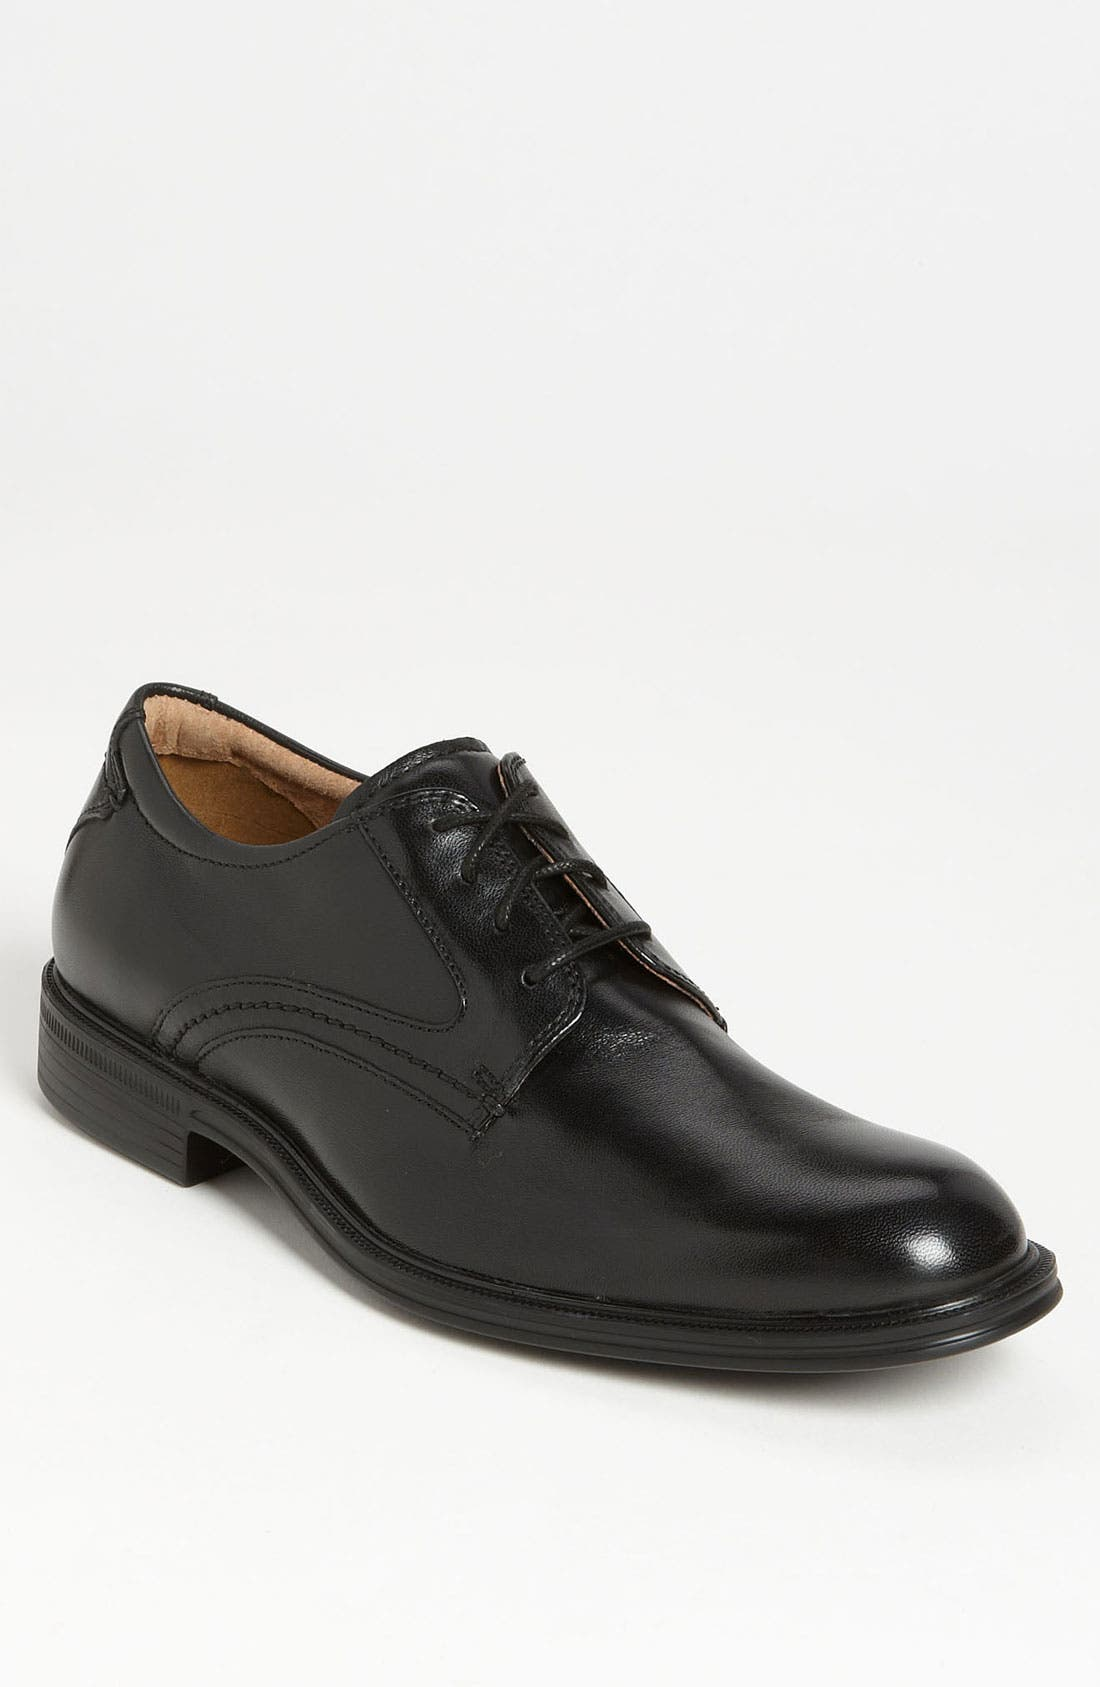 Main Image - Florsheim 'Network' Plain Toe Derby